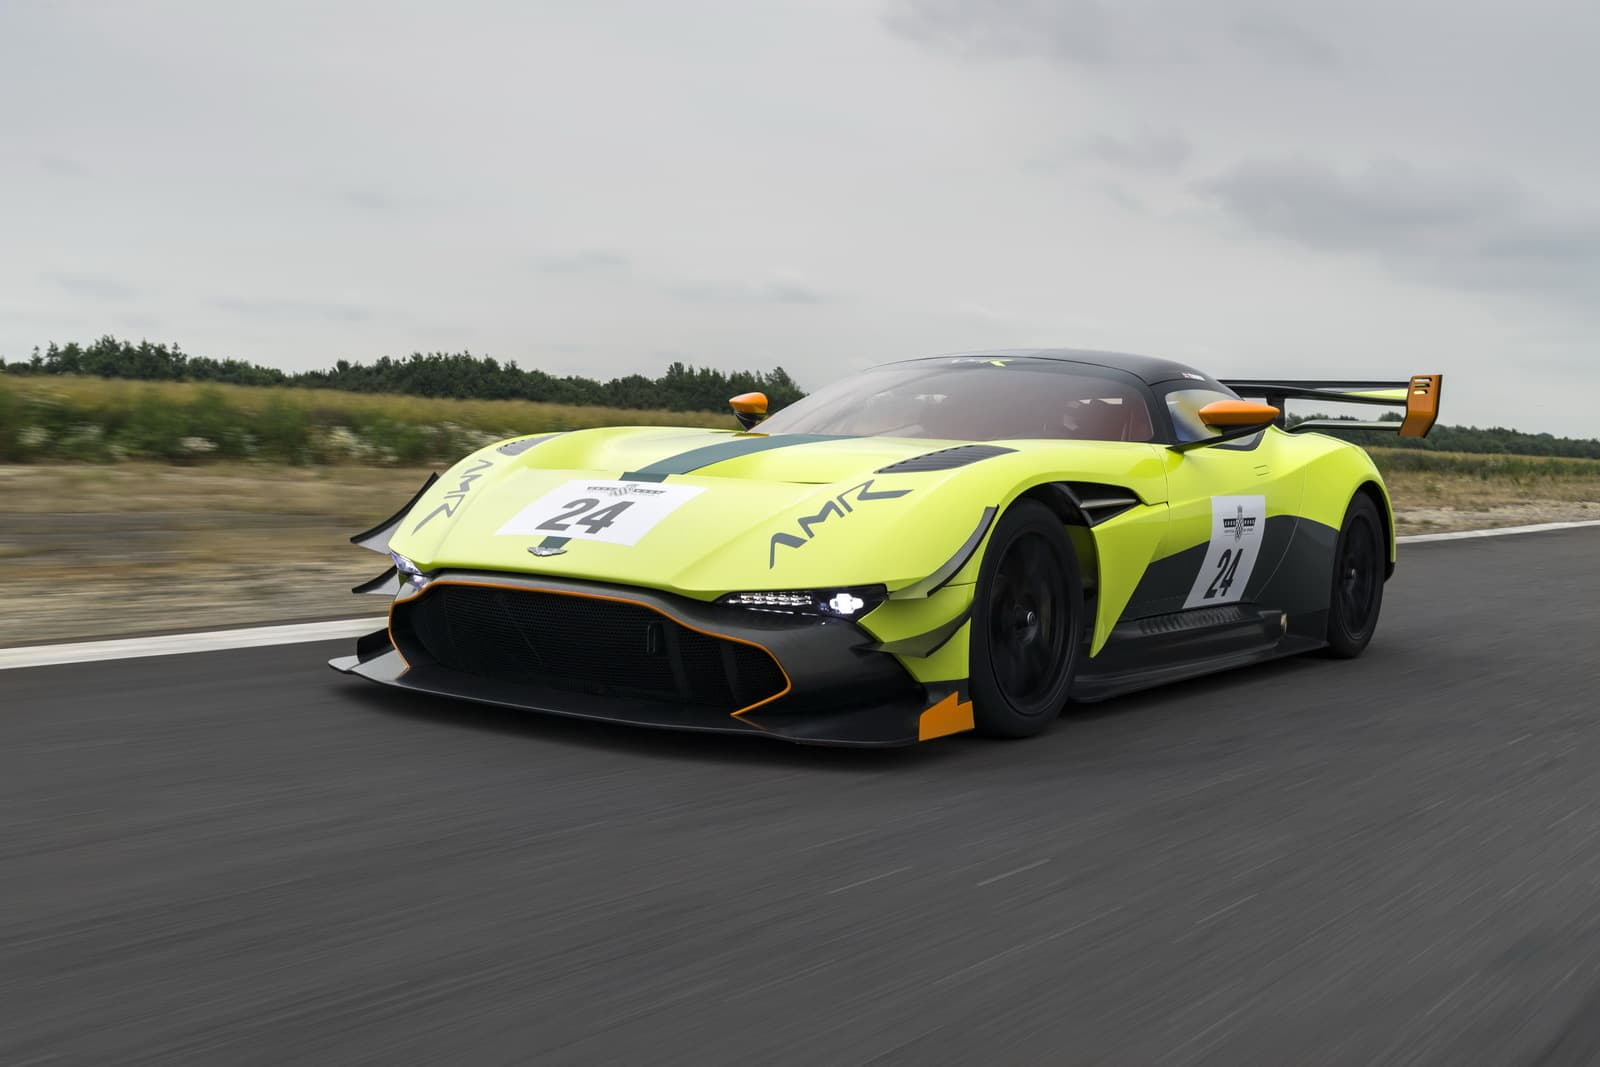 Aston Martin Car Hd Images